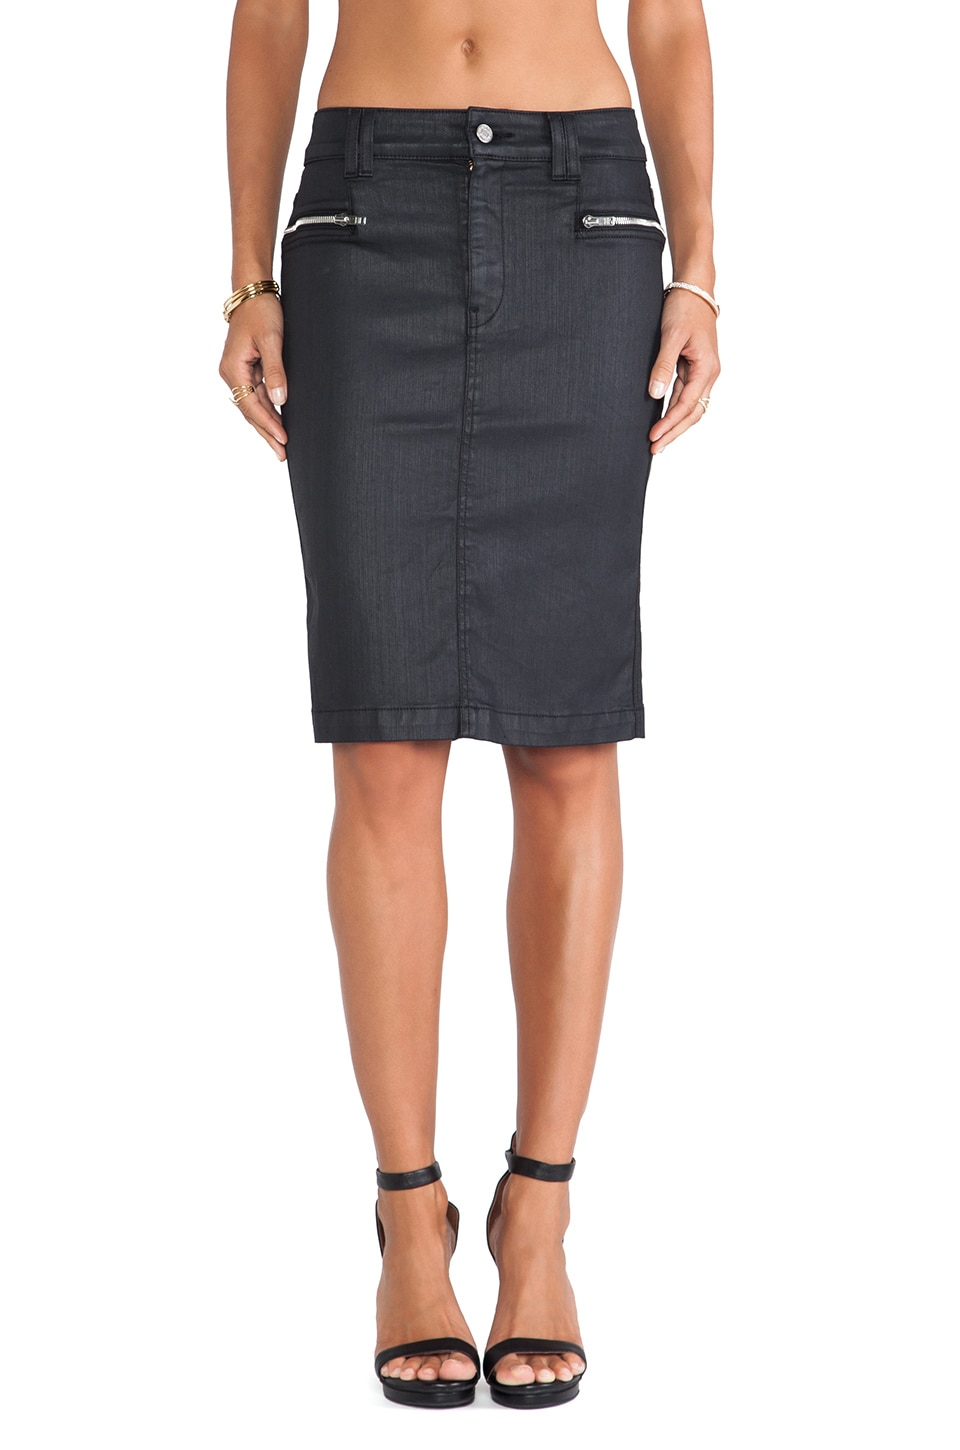 7 For All Mankind Fashion HW Pencil Skirt w/ Zip in Black Jeather